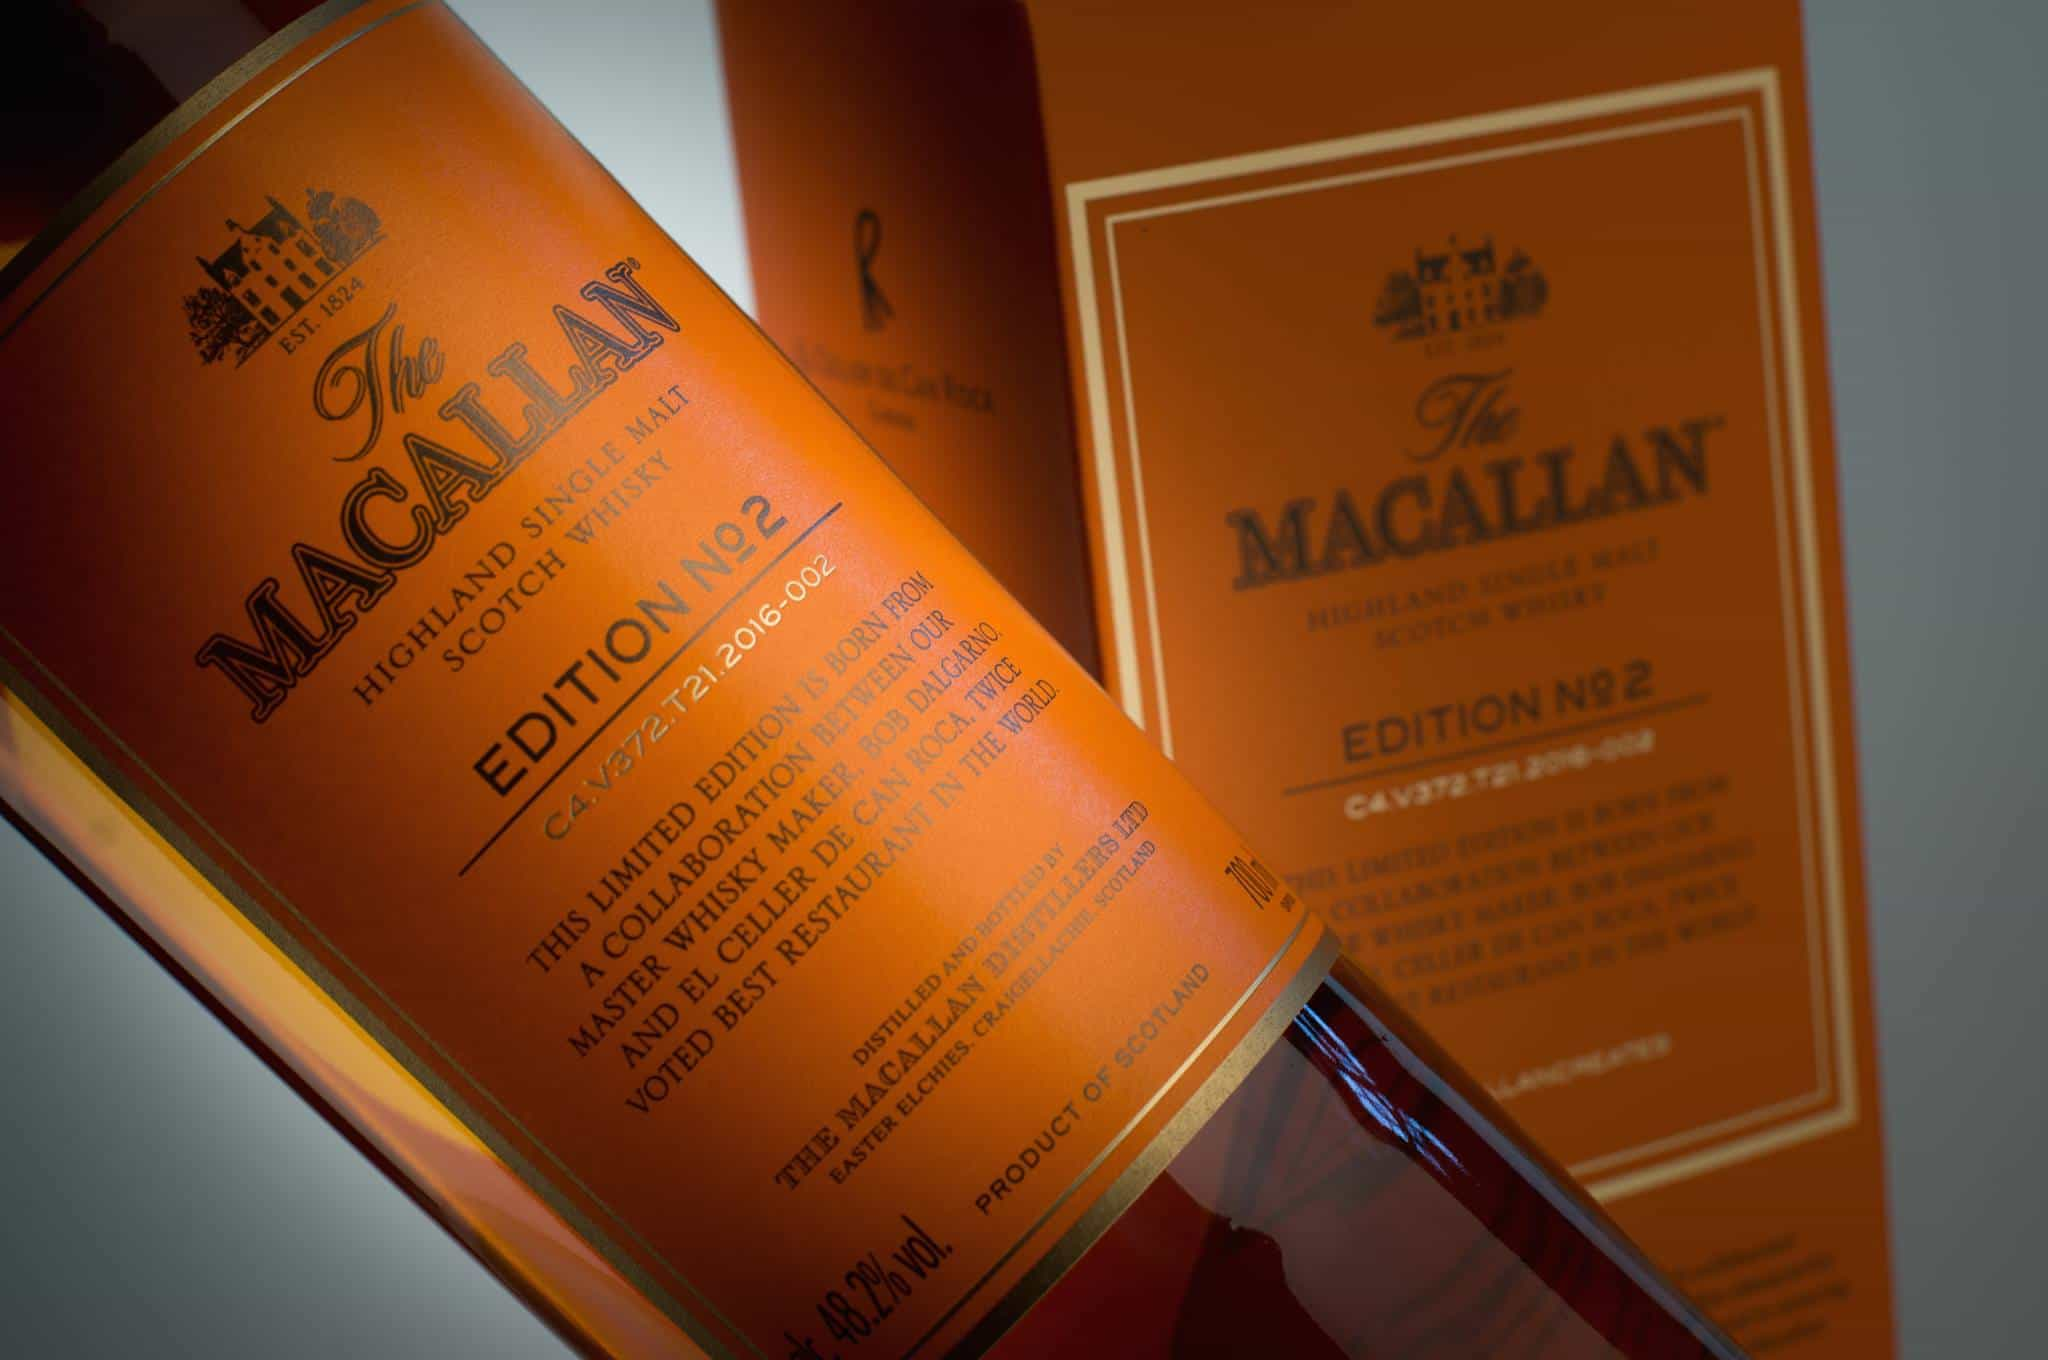 Macallan No. 2